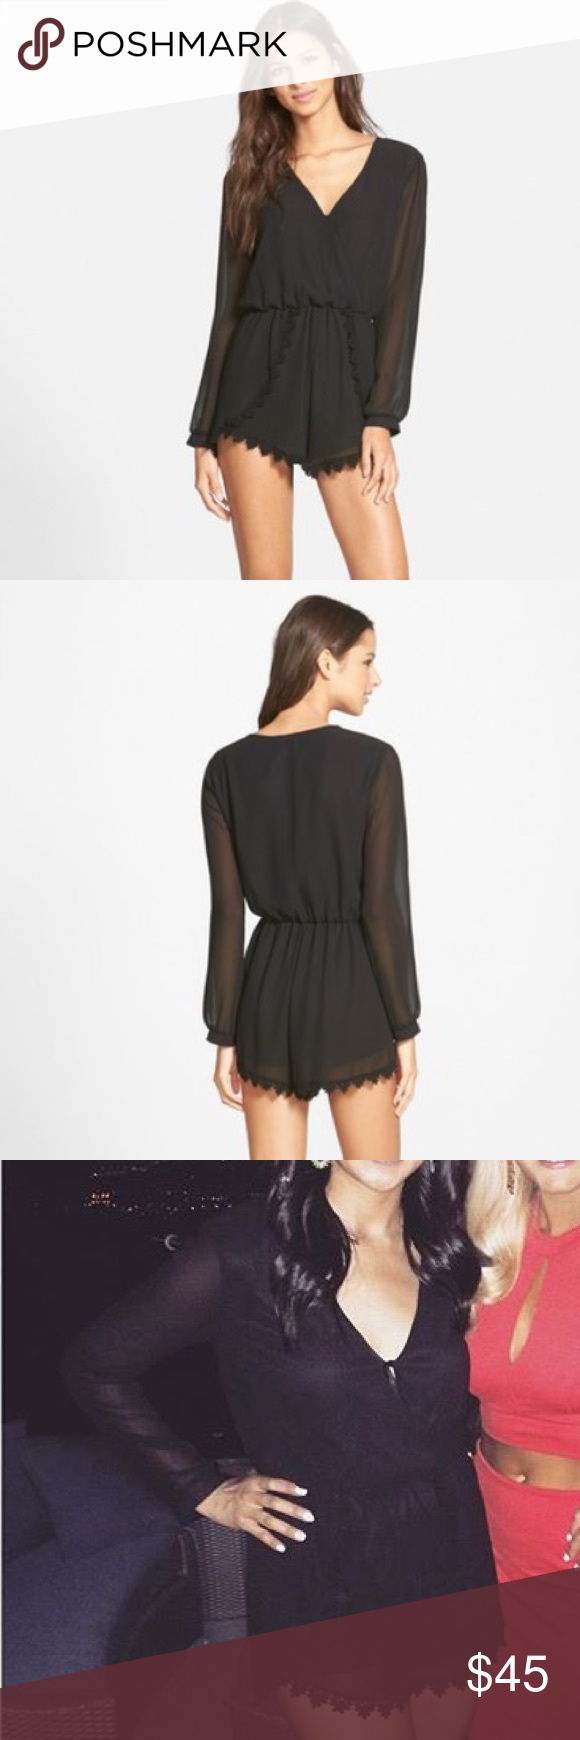 ASTR from Nordstrom Black Romper Wore once to Vegas. Gently worn in great condition. Loved it. I live in a really conservative place so I probably won't get to wear it again. Astr Other